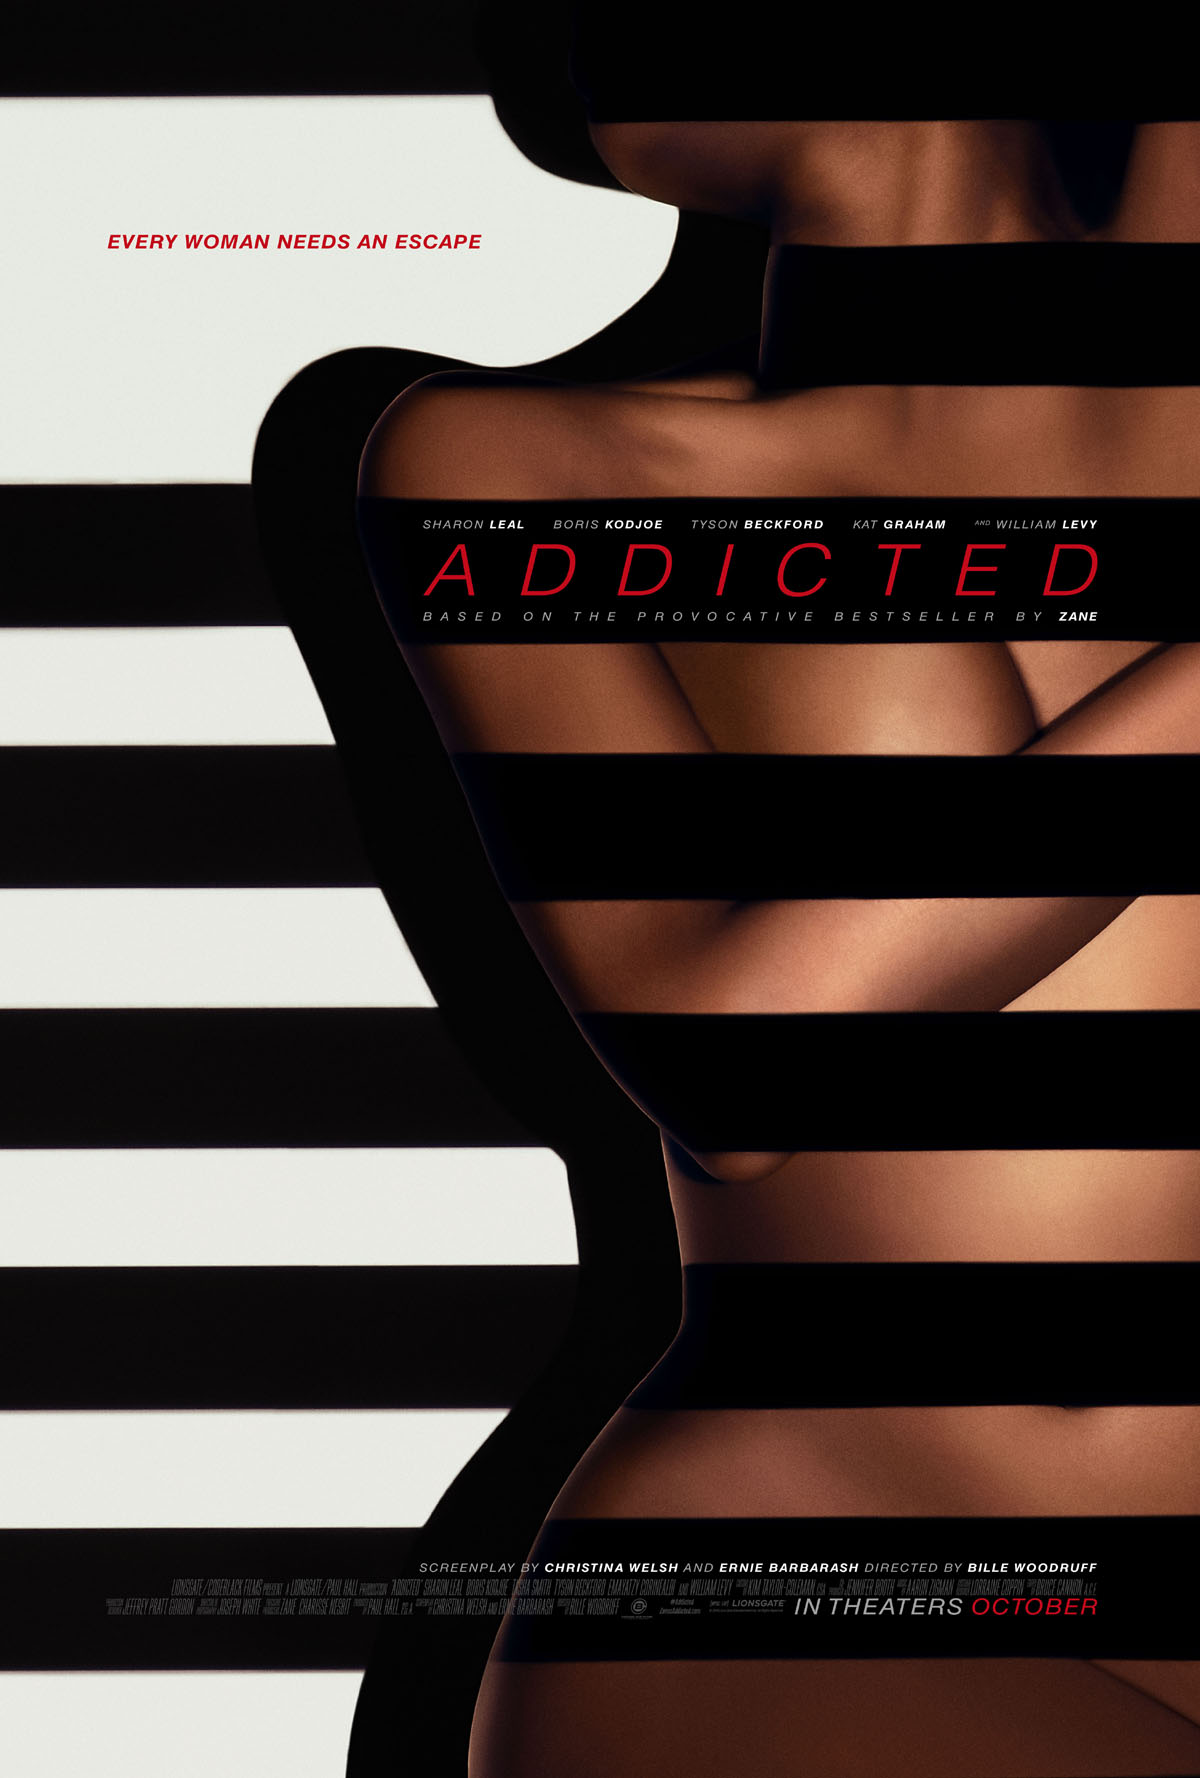 Addicted Movie 2014 William Levy